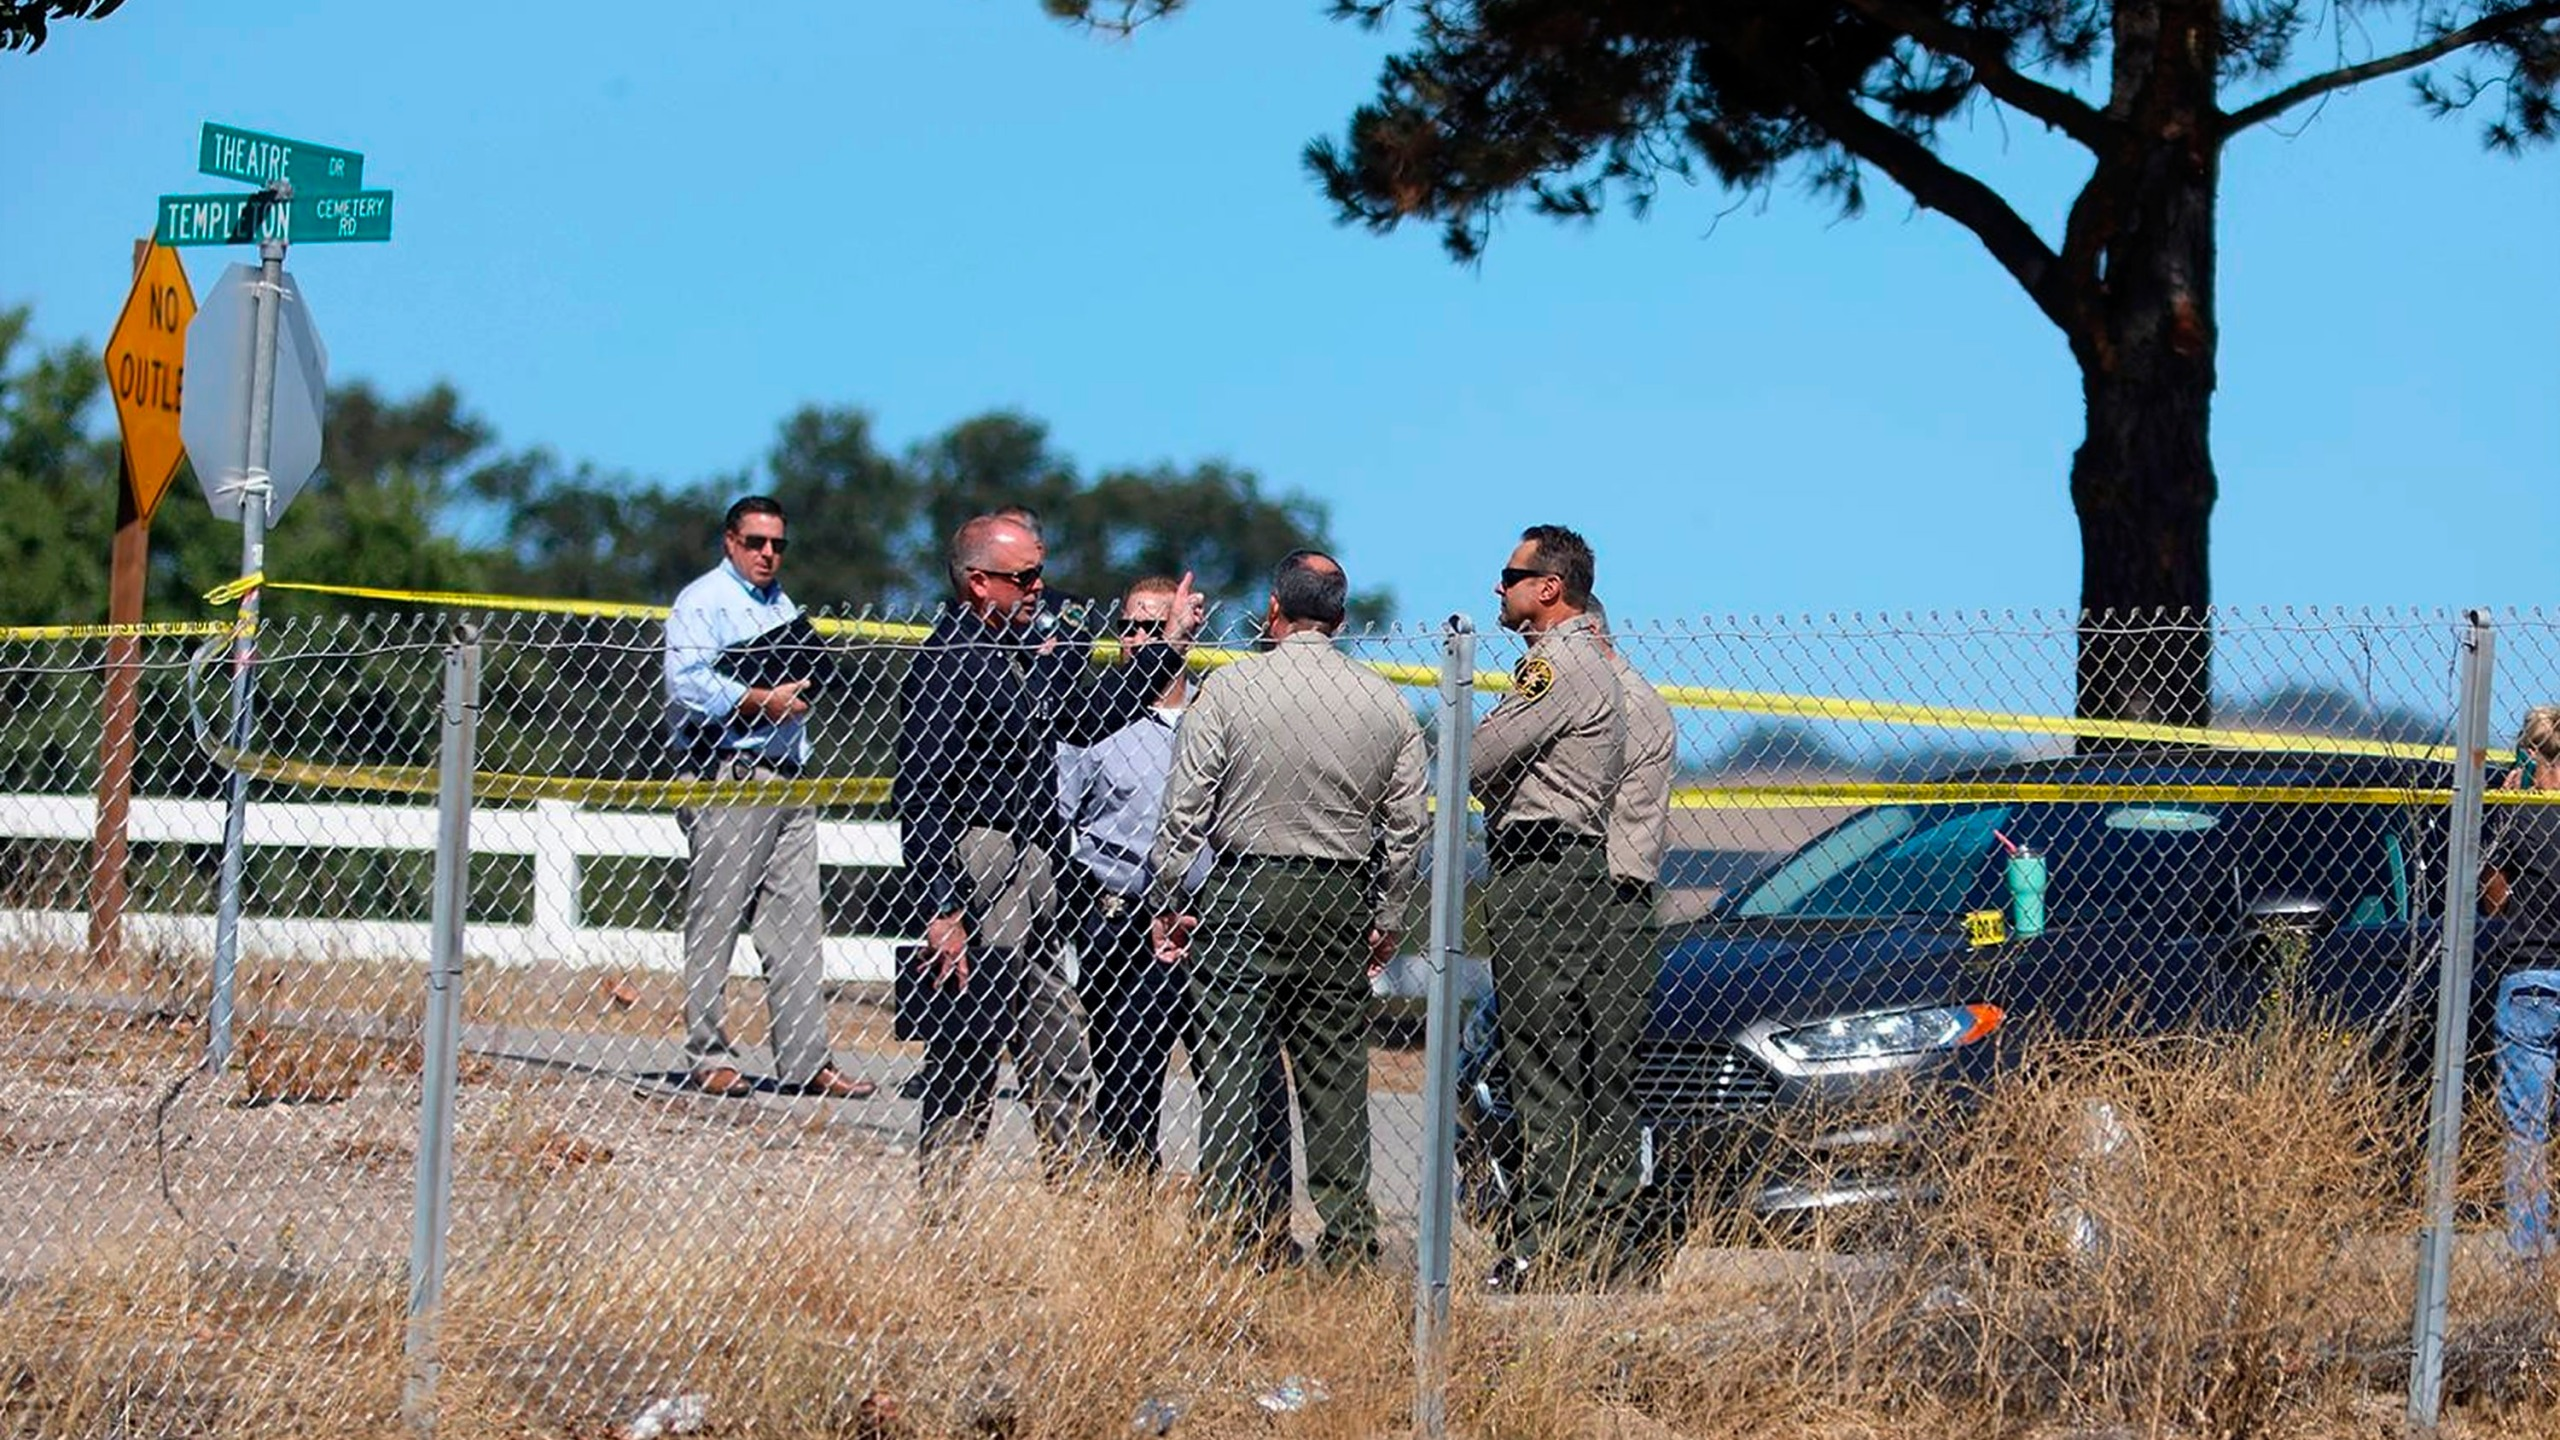 Investigators gather near the shooting scene in which a man was killed by sheriff's deputies after he shot and wounded a deputy in Templeton on Sept. 24, 2020. (Laura Dickinson / The Tribune via Associated Press)